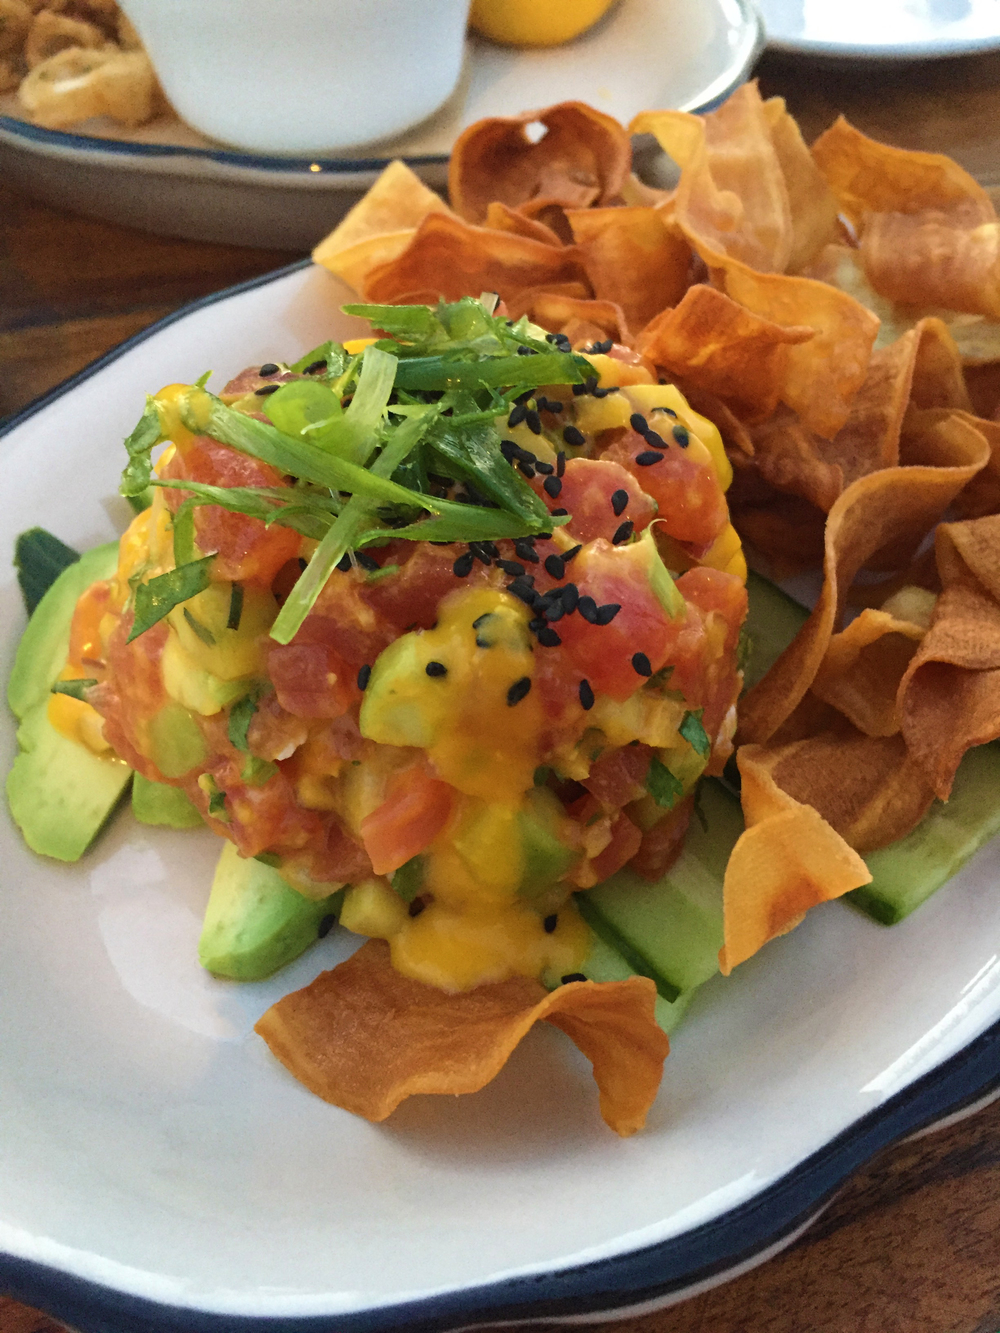 Tuna Tartare with ginger lime marinade, cilantro, avocado, and boniato chips.